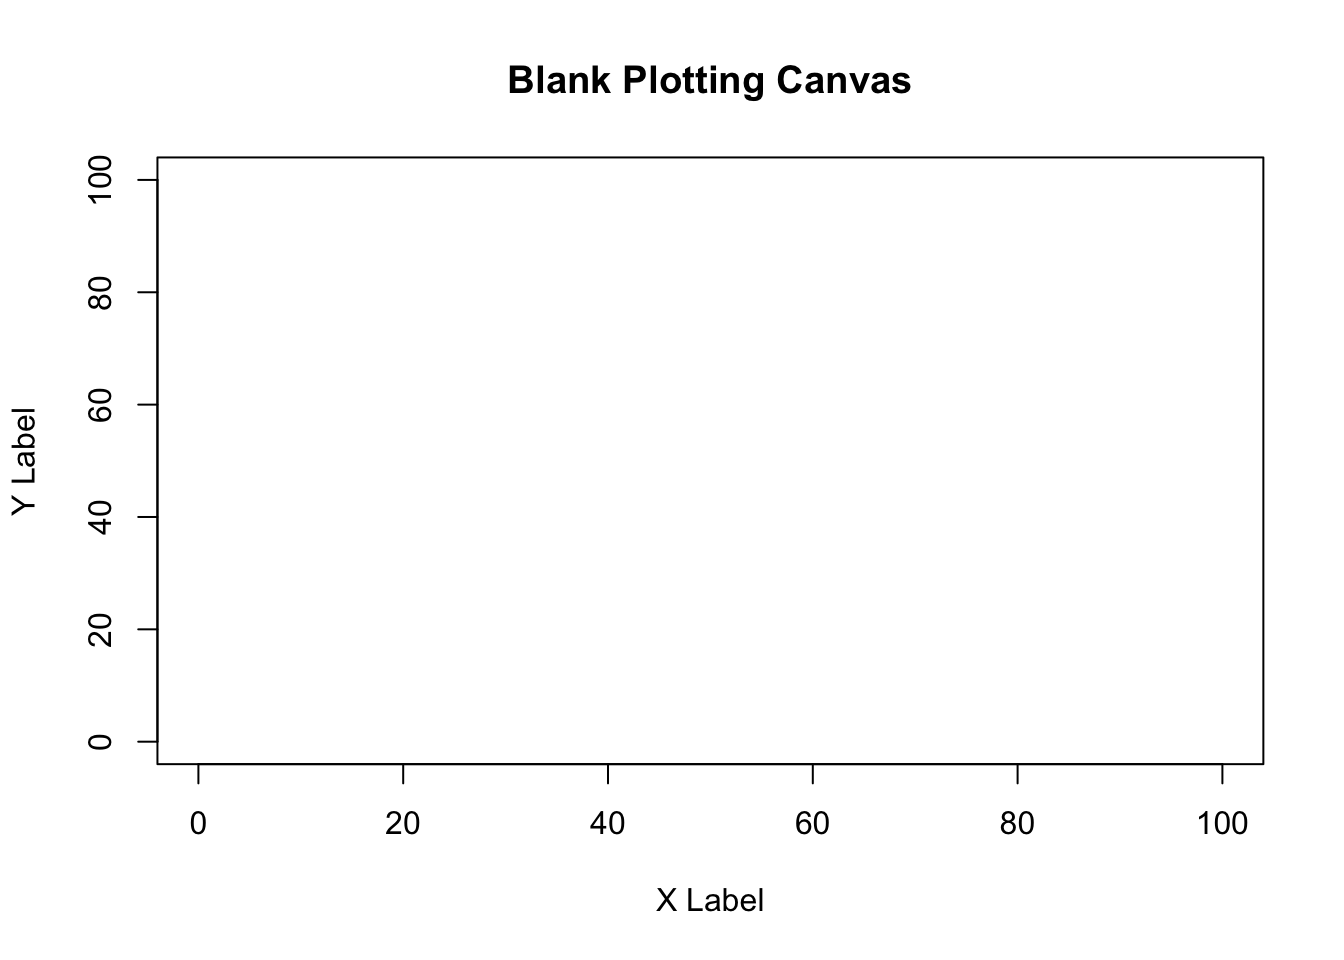 a blank plotting space, ready for additional elements!